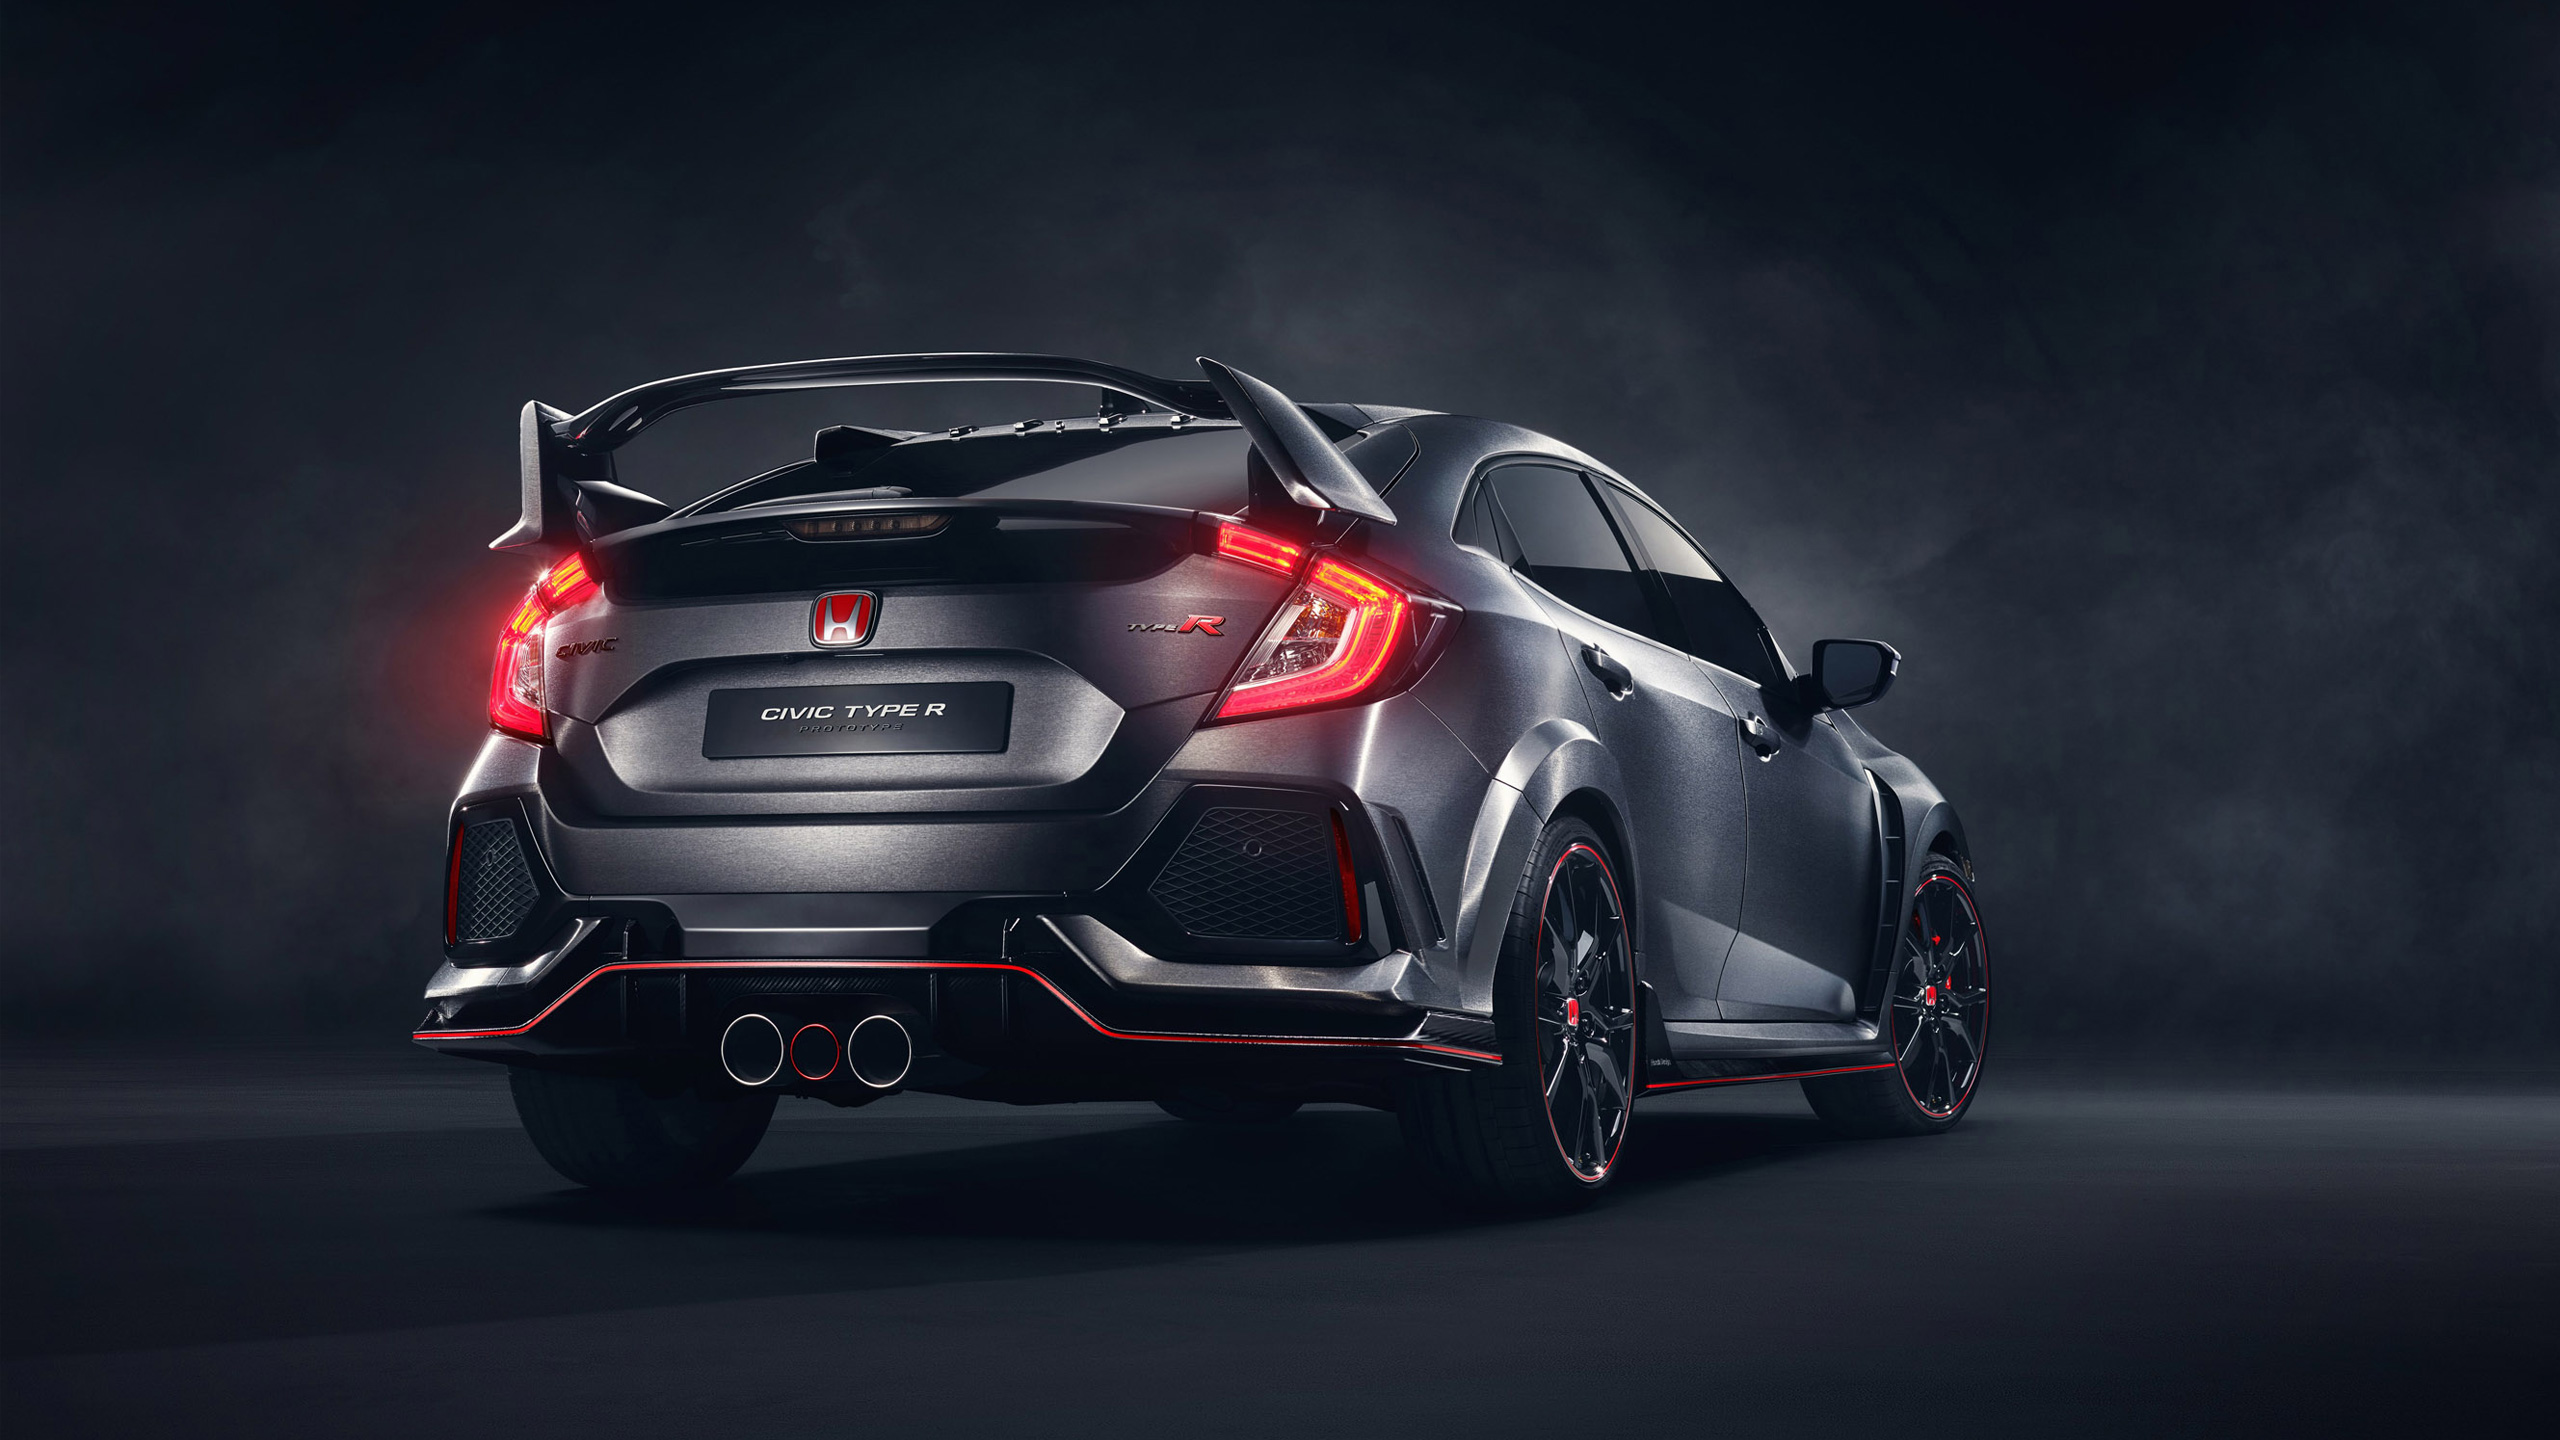 2017 honda civic type r 3 wallpaper hd car wallpapers id 7021. Black Bedroom Furniture Sets. Home Design Ideas